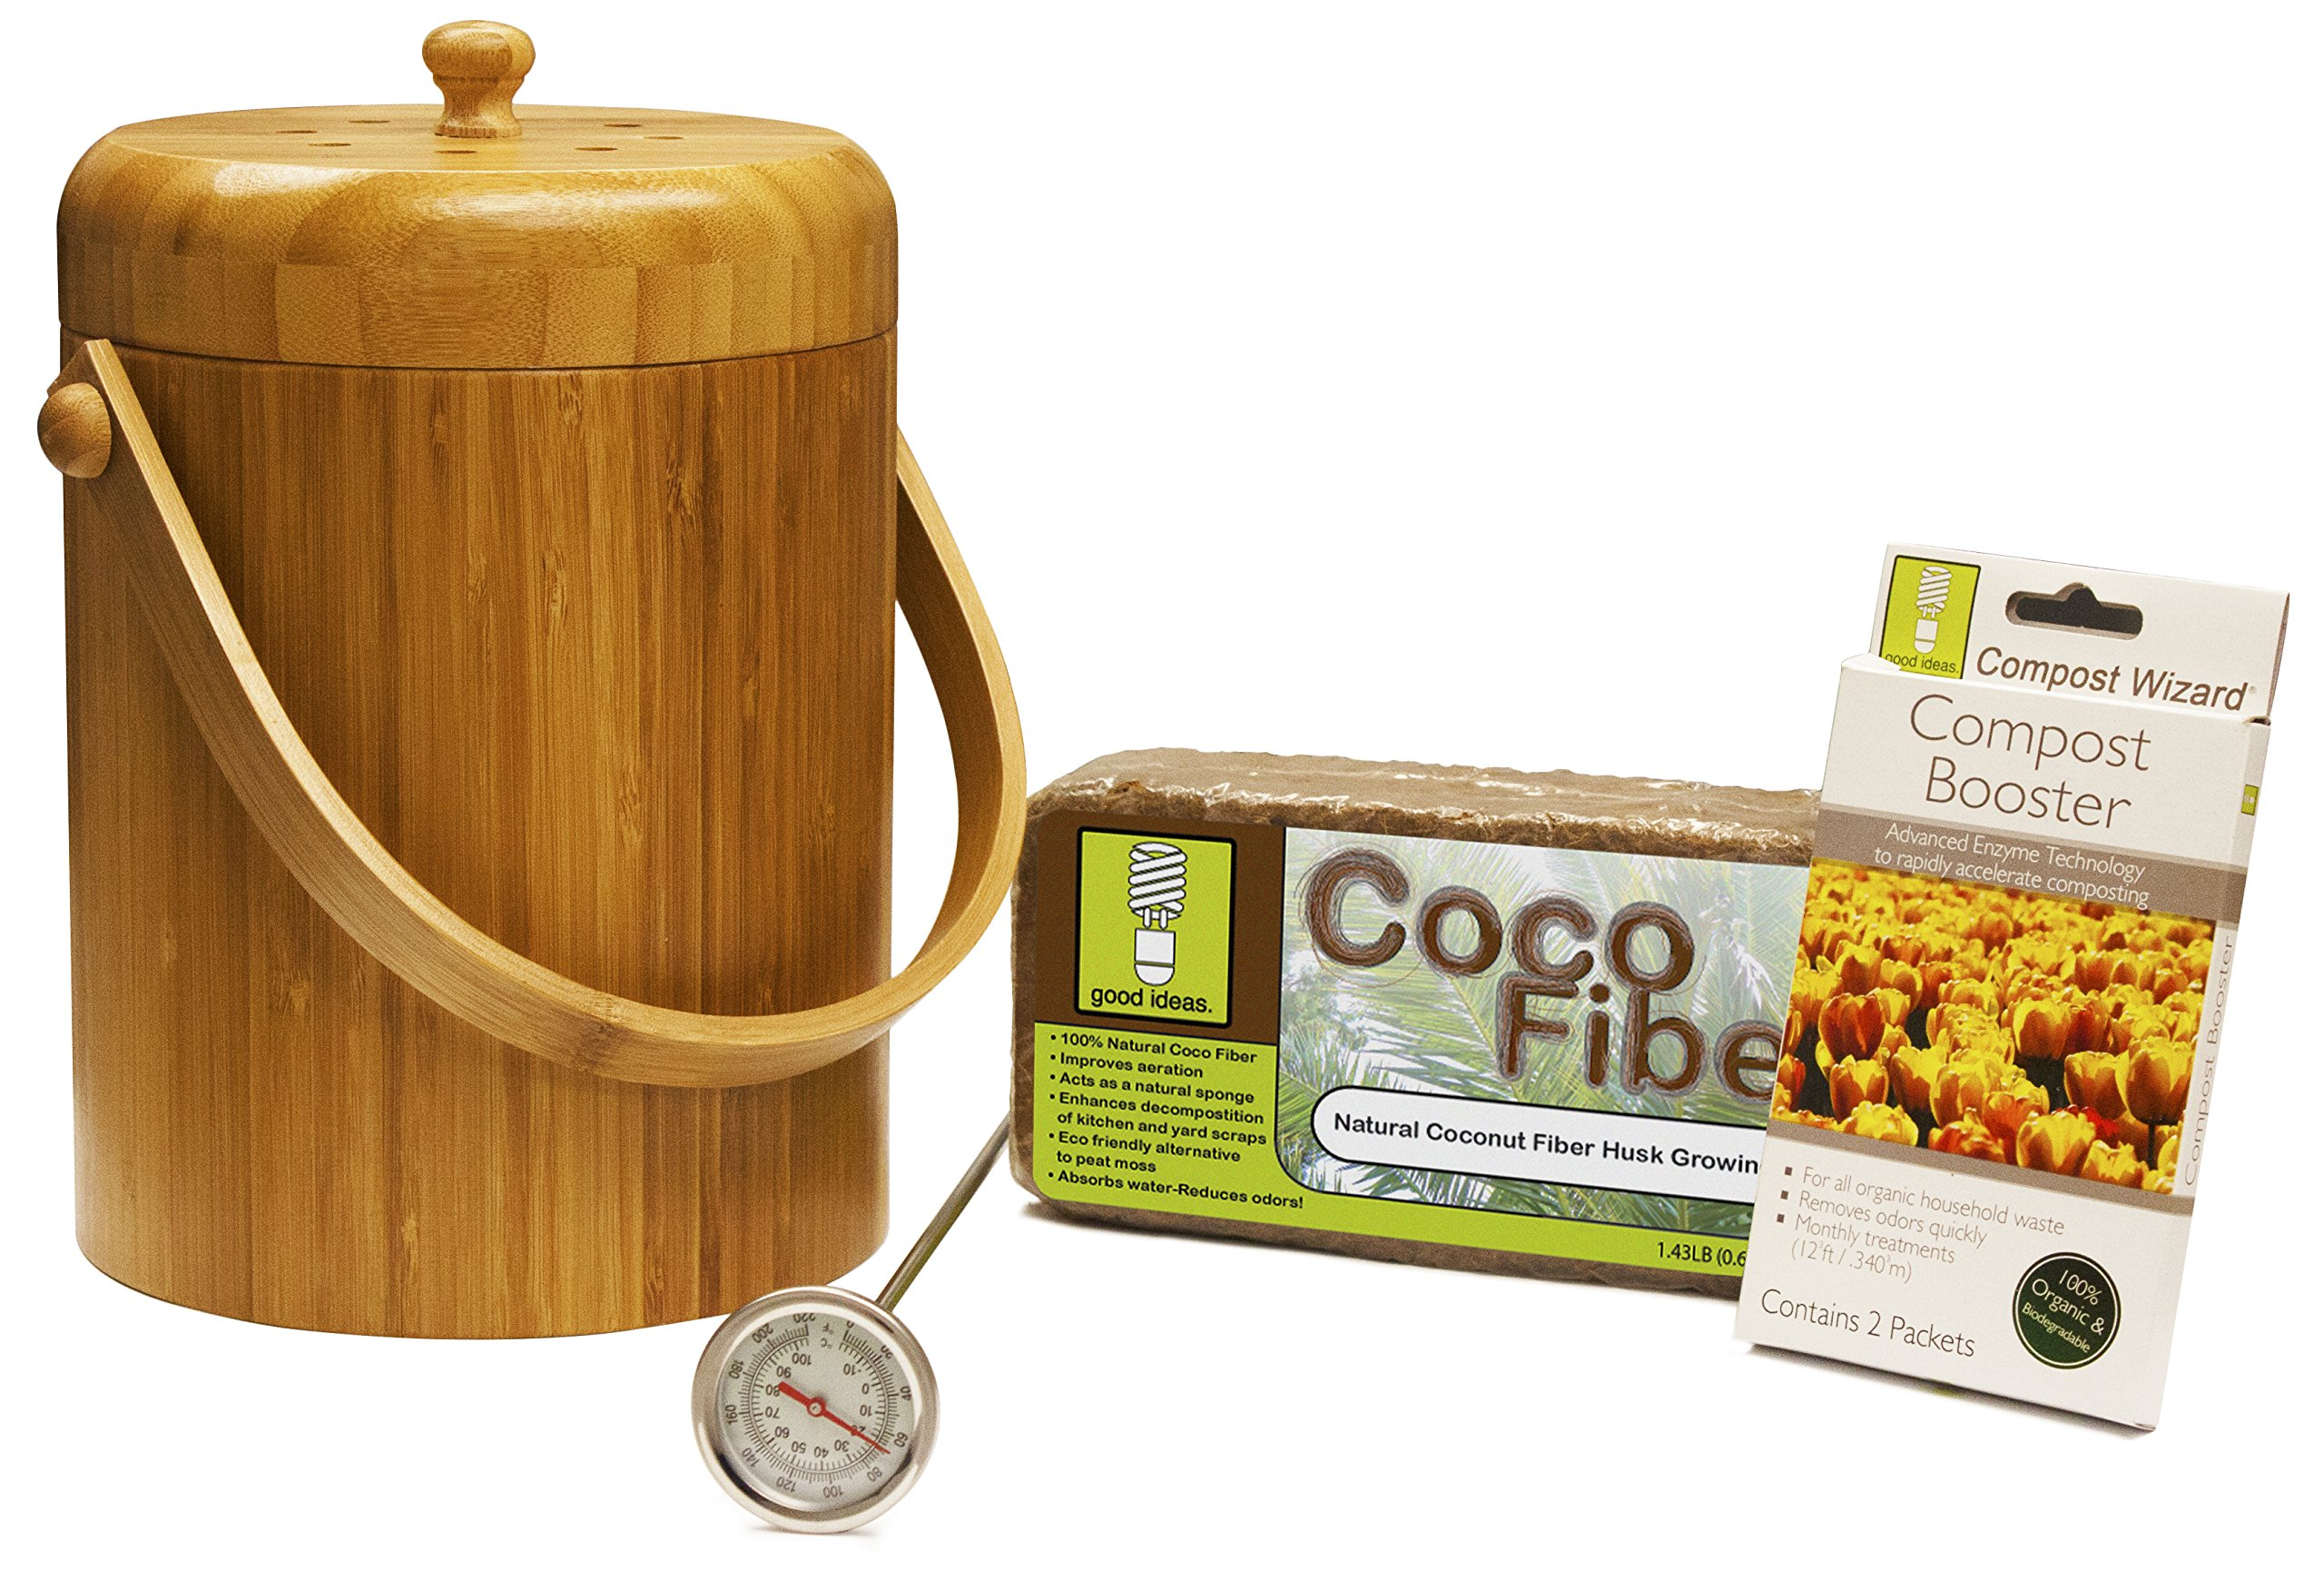 Good Ideas CW-STA3QT-BOO Bamboo Compost Wizard Pail Essentials Kit